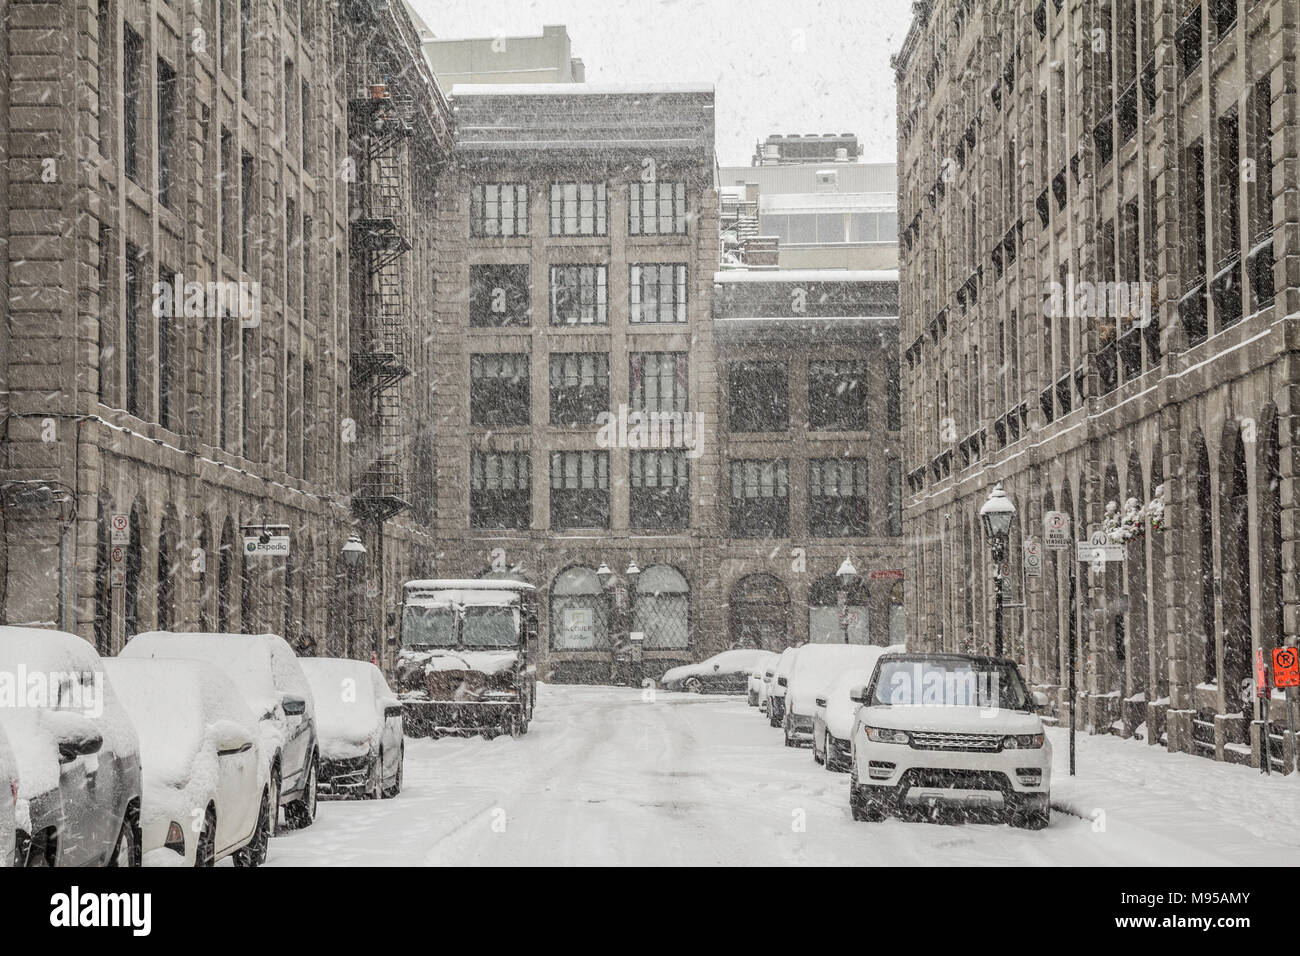 MONTREAL, CANADA - DECEMBER 29, 2016: Street Alley of Old-Montreal in winter under a snow storm with a modern skyscraper in the background  Picture of - Stock Image